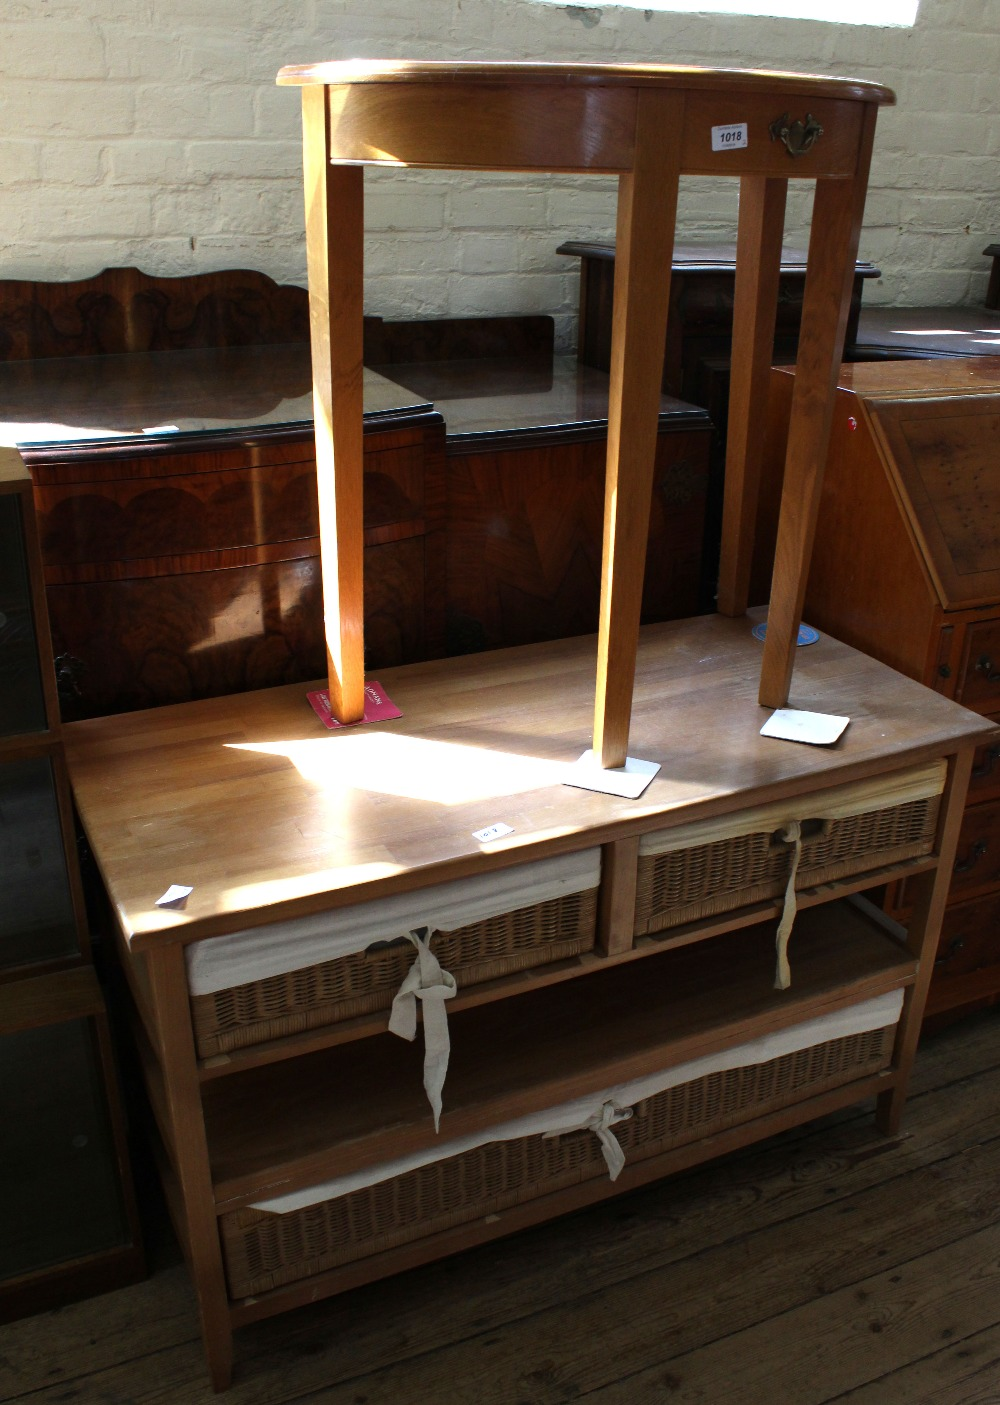 Lot 1018 - A reproduction 'D' end table and a wood and wicker drawer combination storage unit